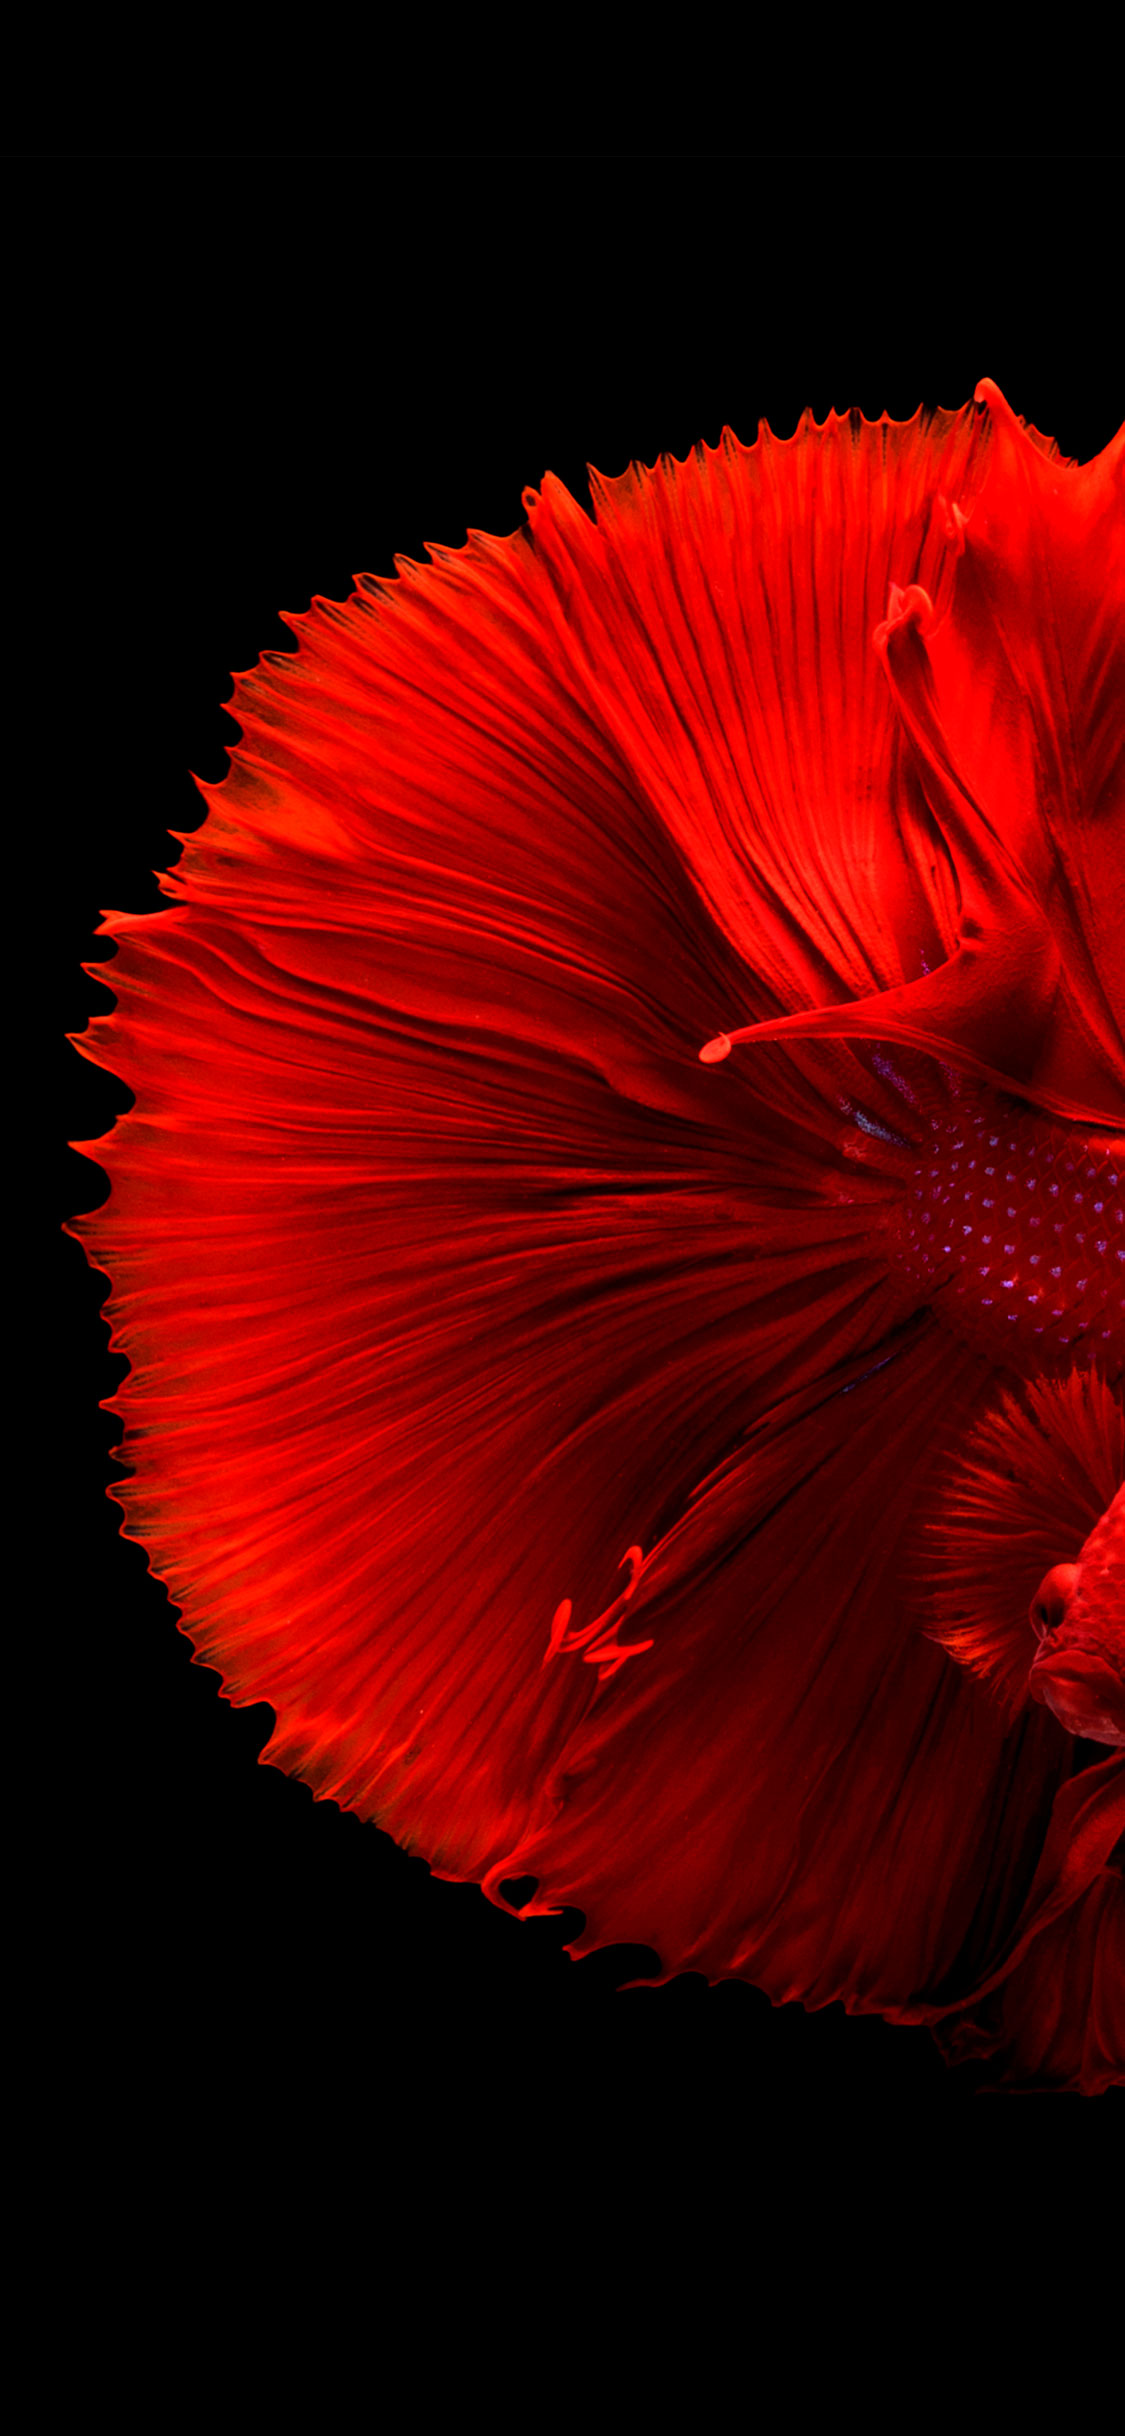 iPhone wallpaper fish red Fish